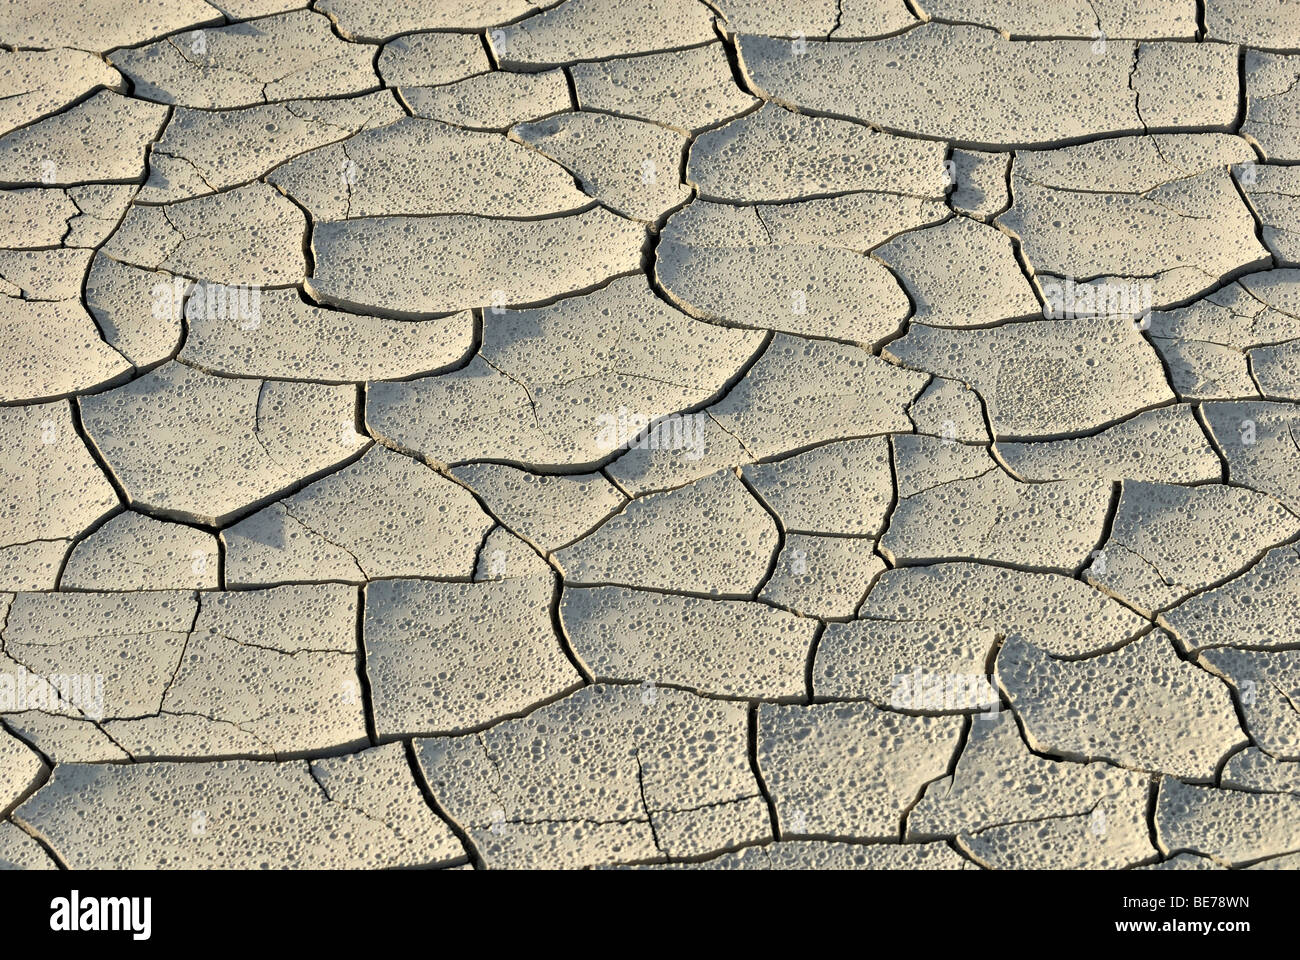 Dried mud puddle with dry cracks and traces of rain drops, Highway 24 near Caineville, Utah, USA Stock Photo